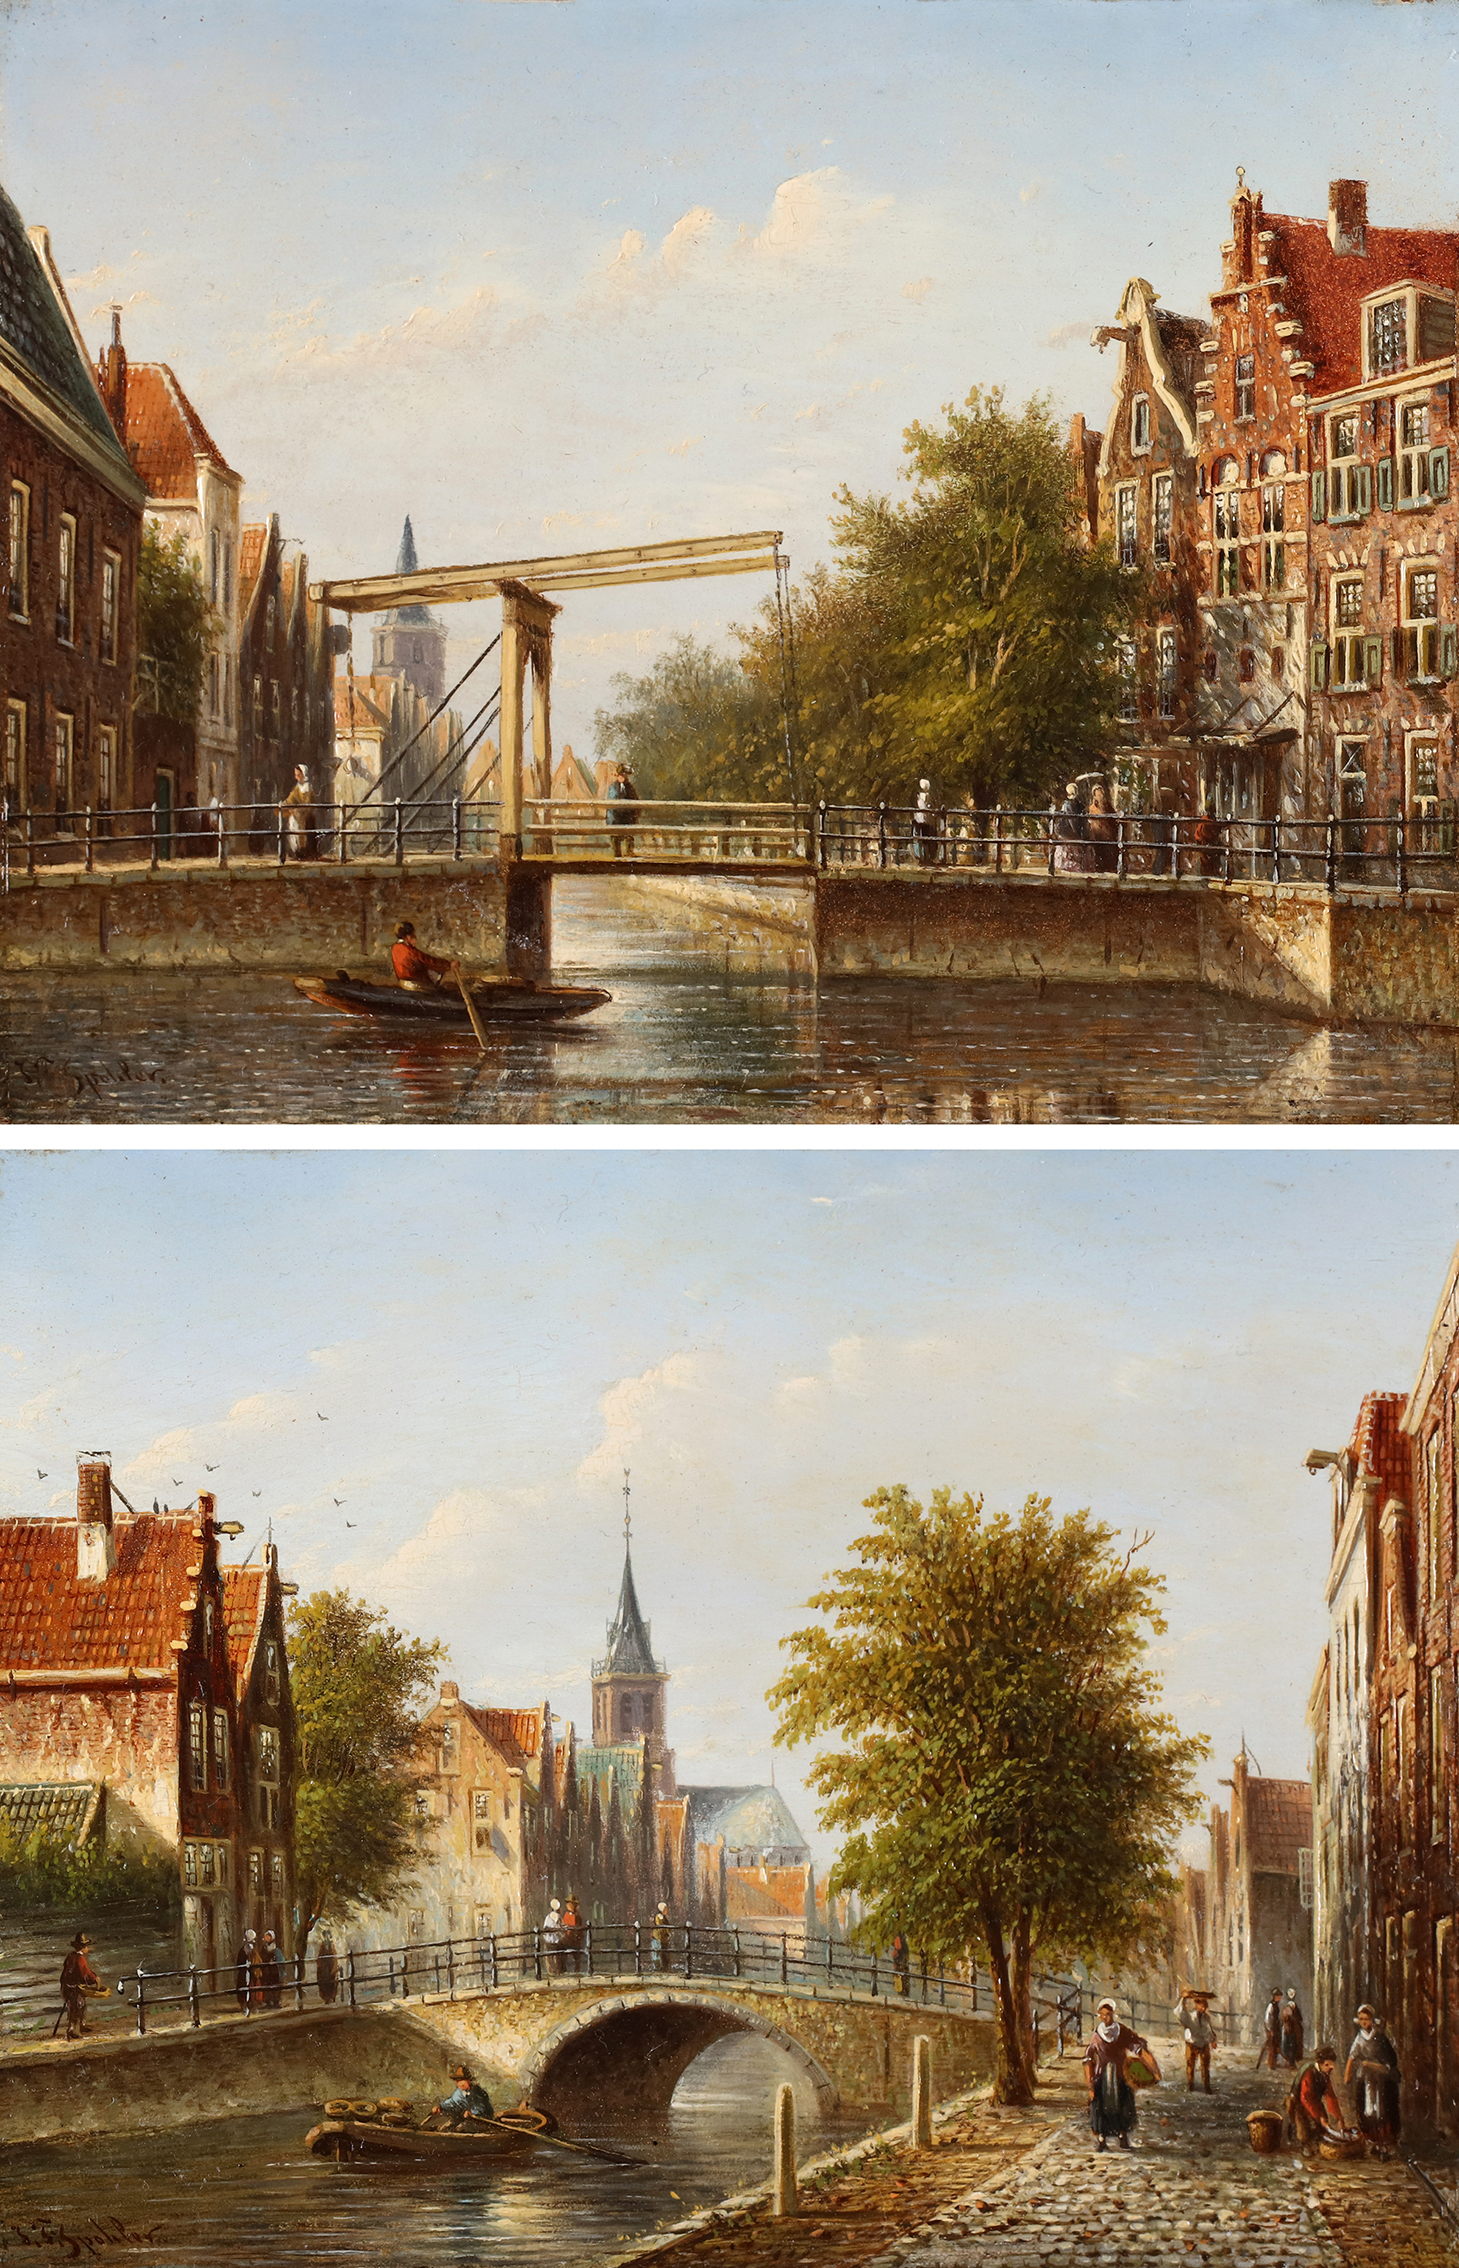 Two city views of Amsterdam